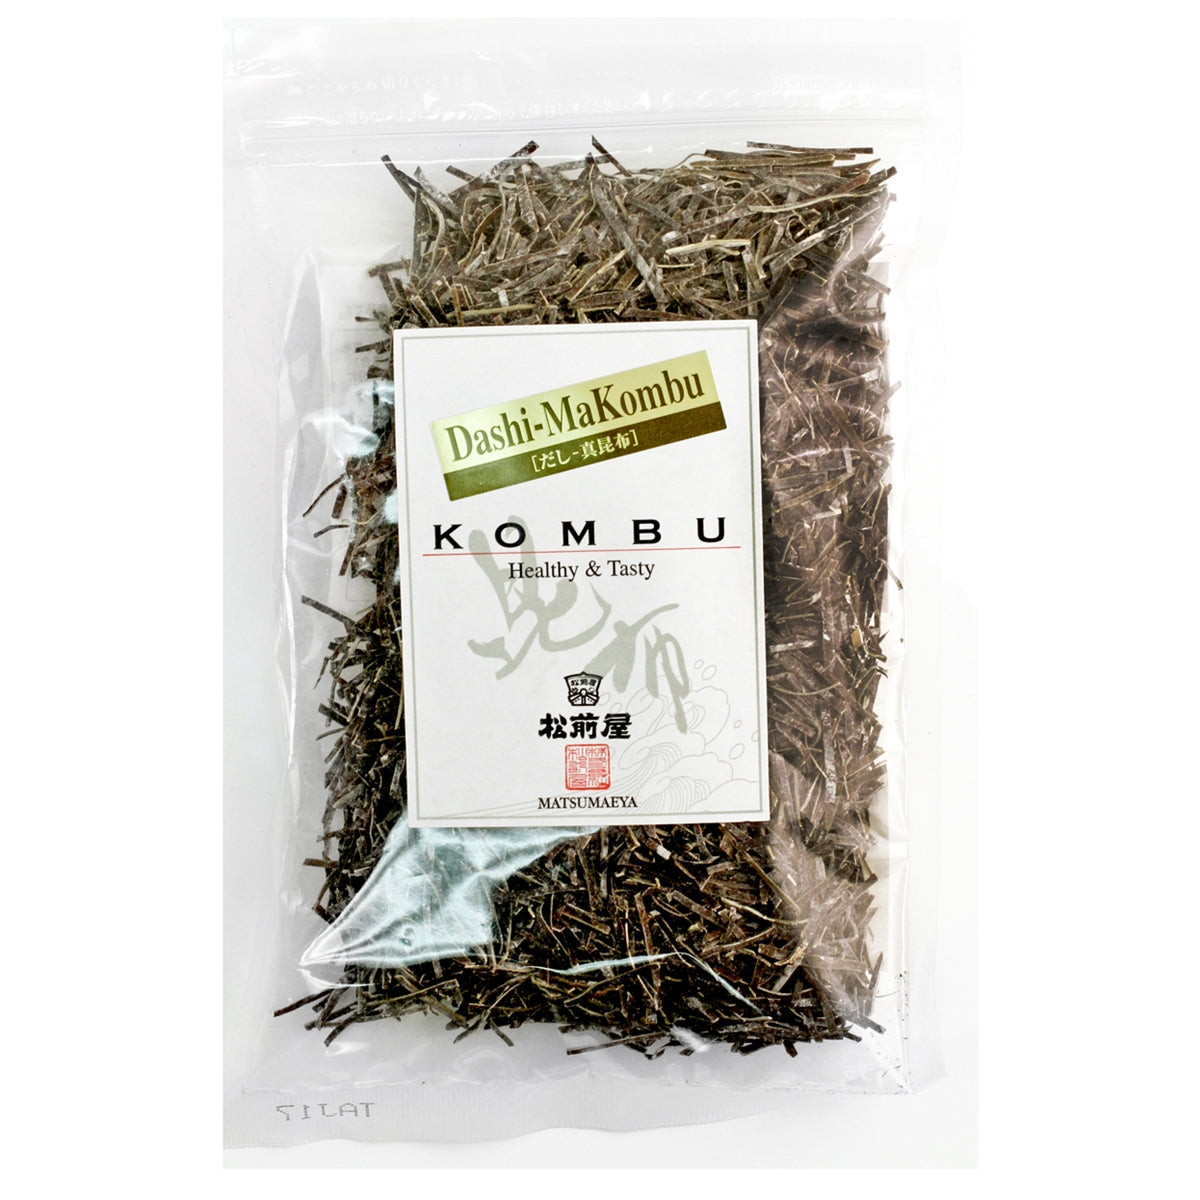 Shredded Kelp 2-Year Dashi Ma-Kombu 5.8 oz / 165g